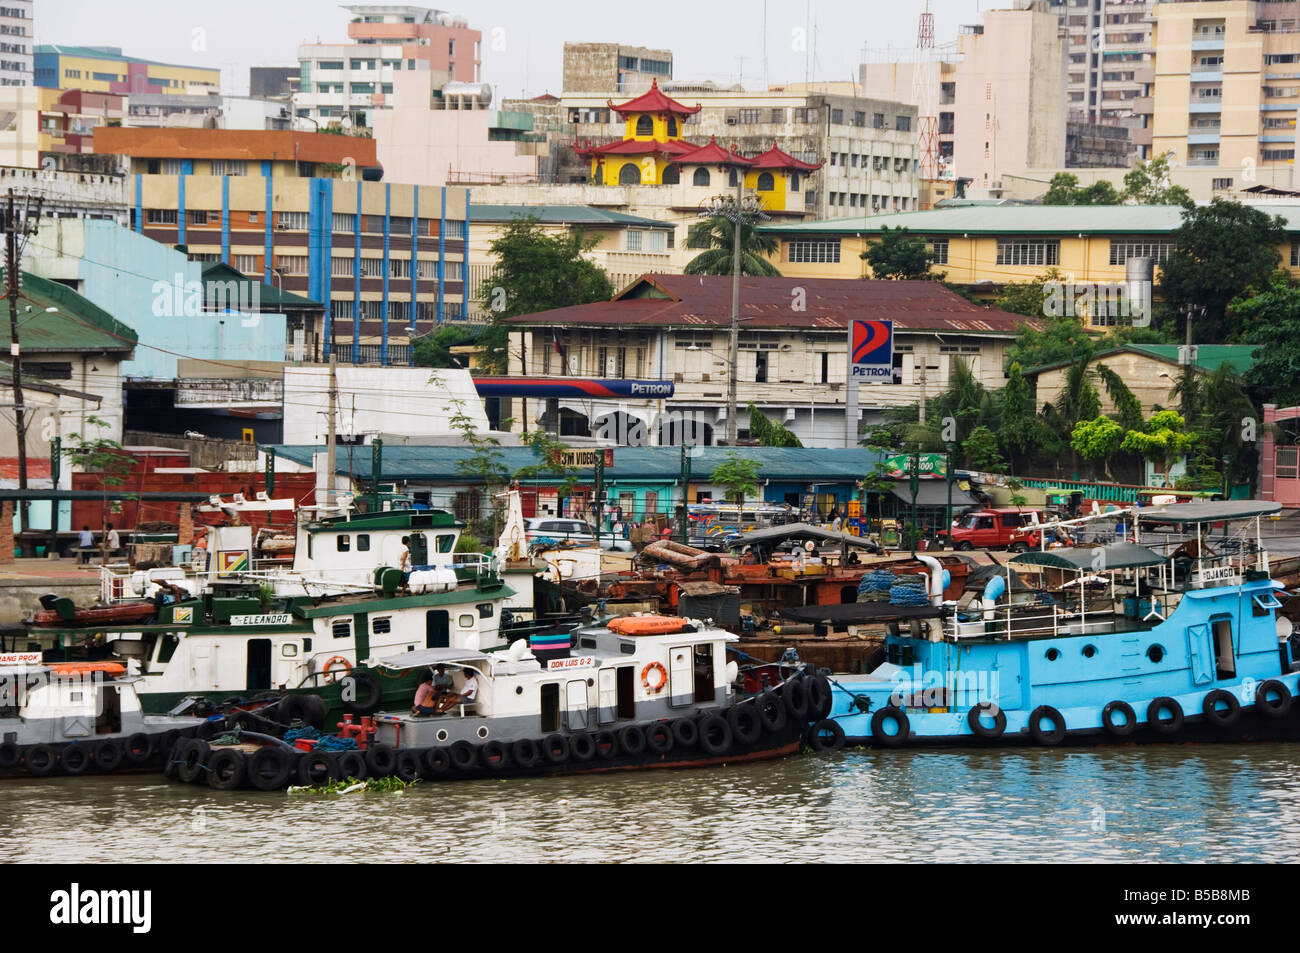 Barges on River Pasig with city buildings behind, Manila, Philippines, Southeast Asia - Stock Image